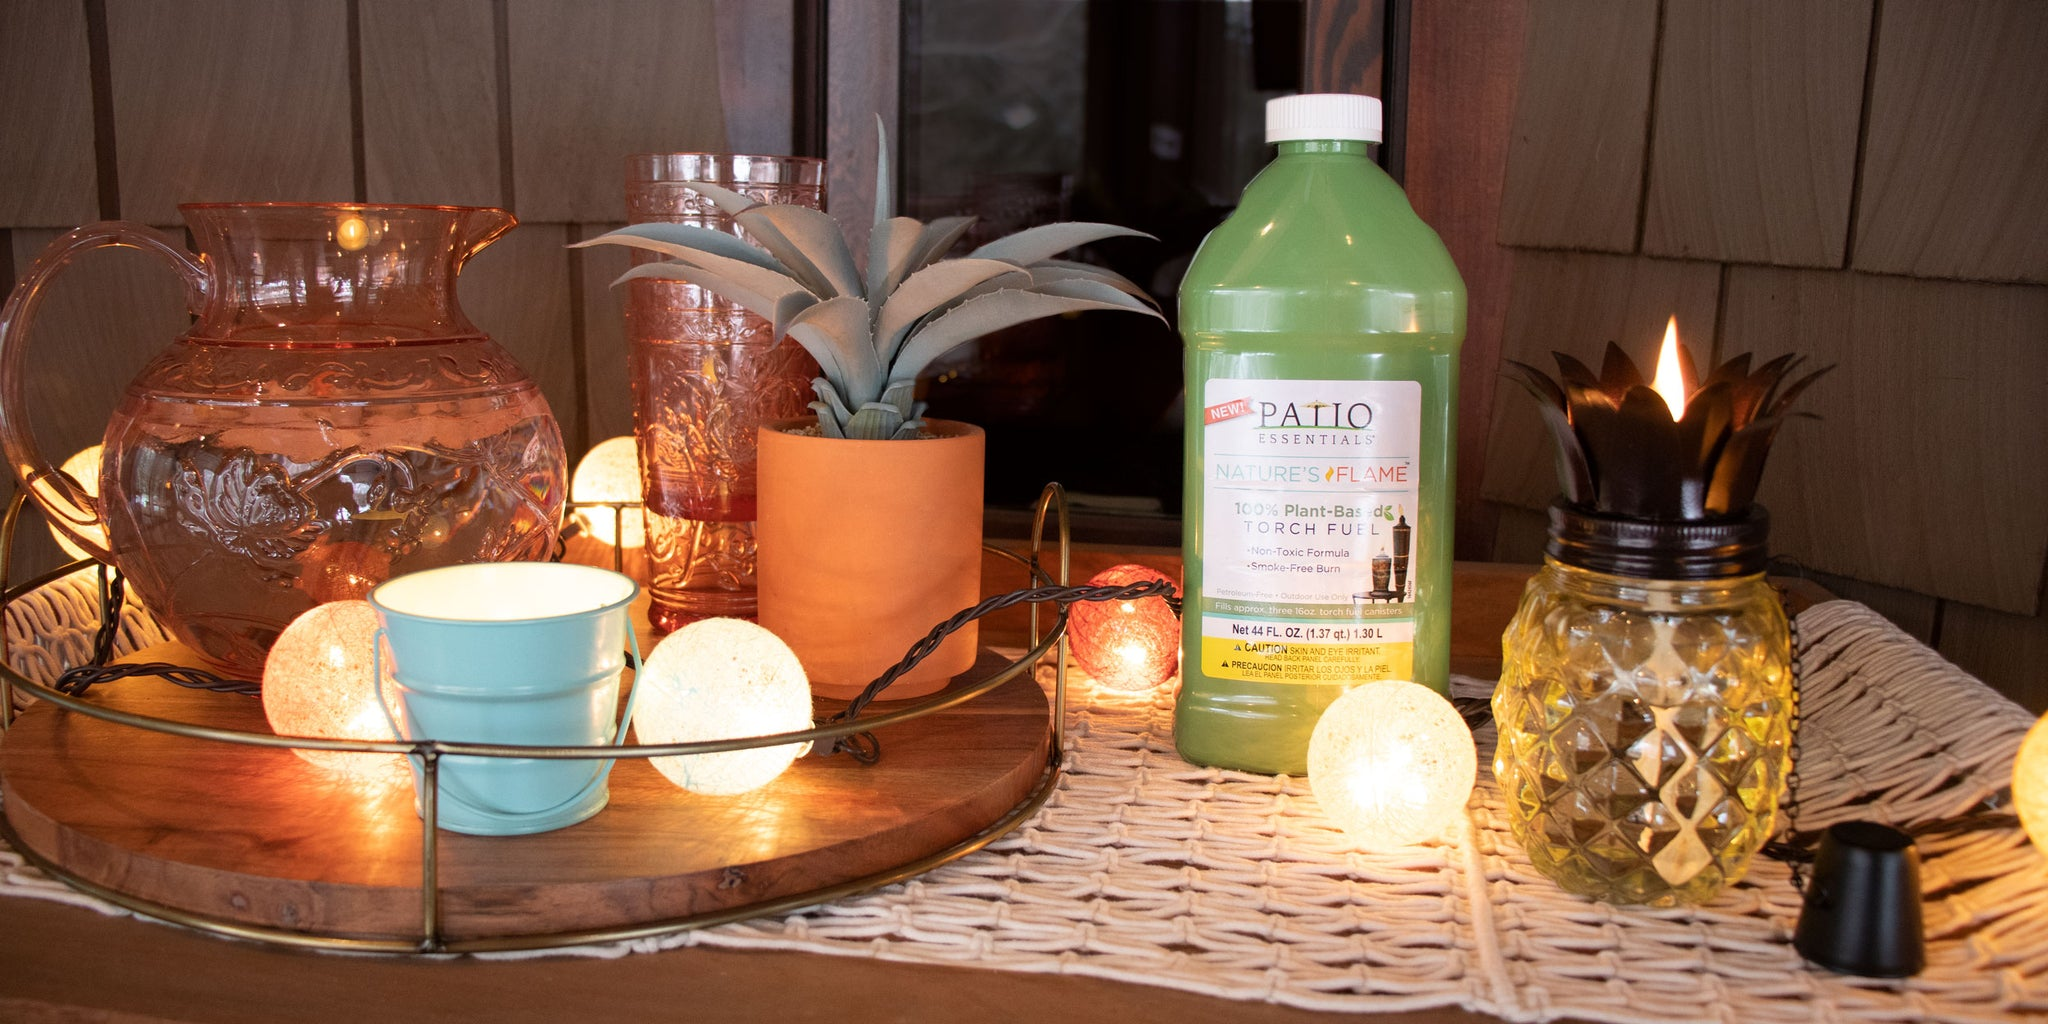 A Comparison of Patio Essentials' Torch Fuels | Patio Essentials